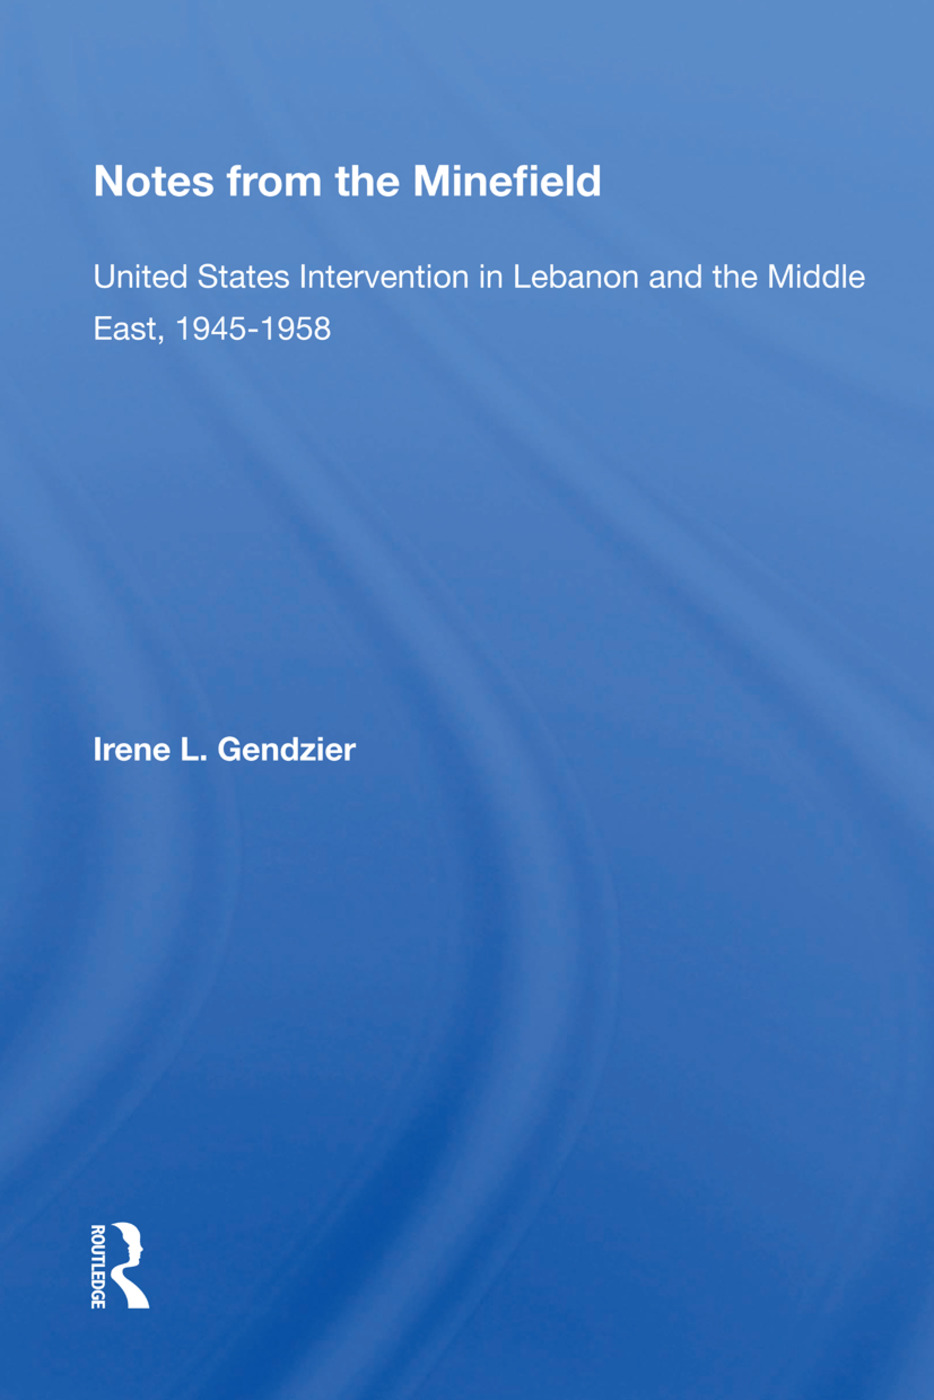 Notes From The Minefield: United States Intervention In Lebanon And The Middle East, 1945-1958 book cover